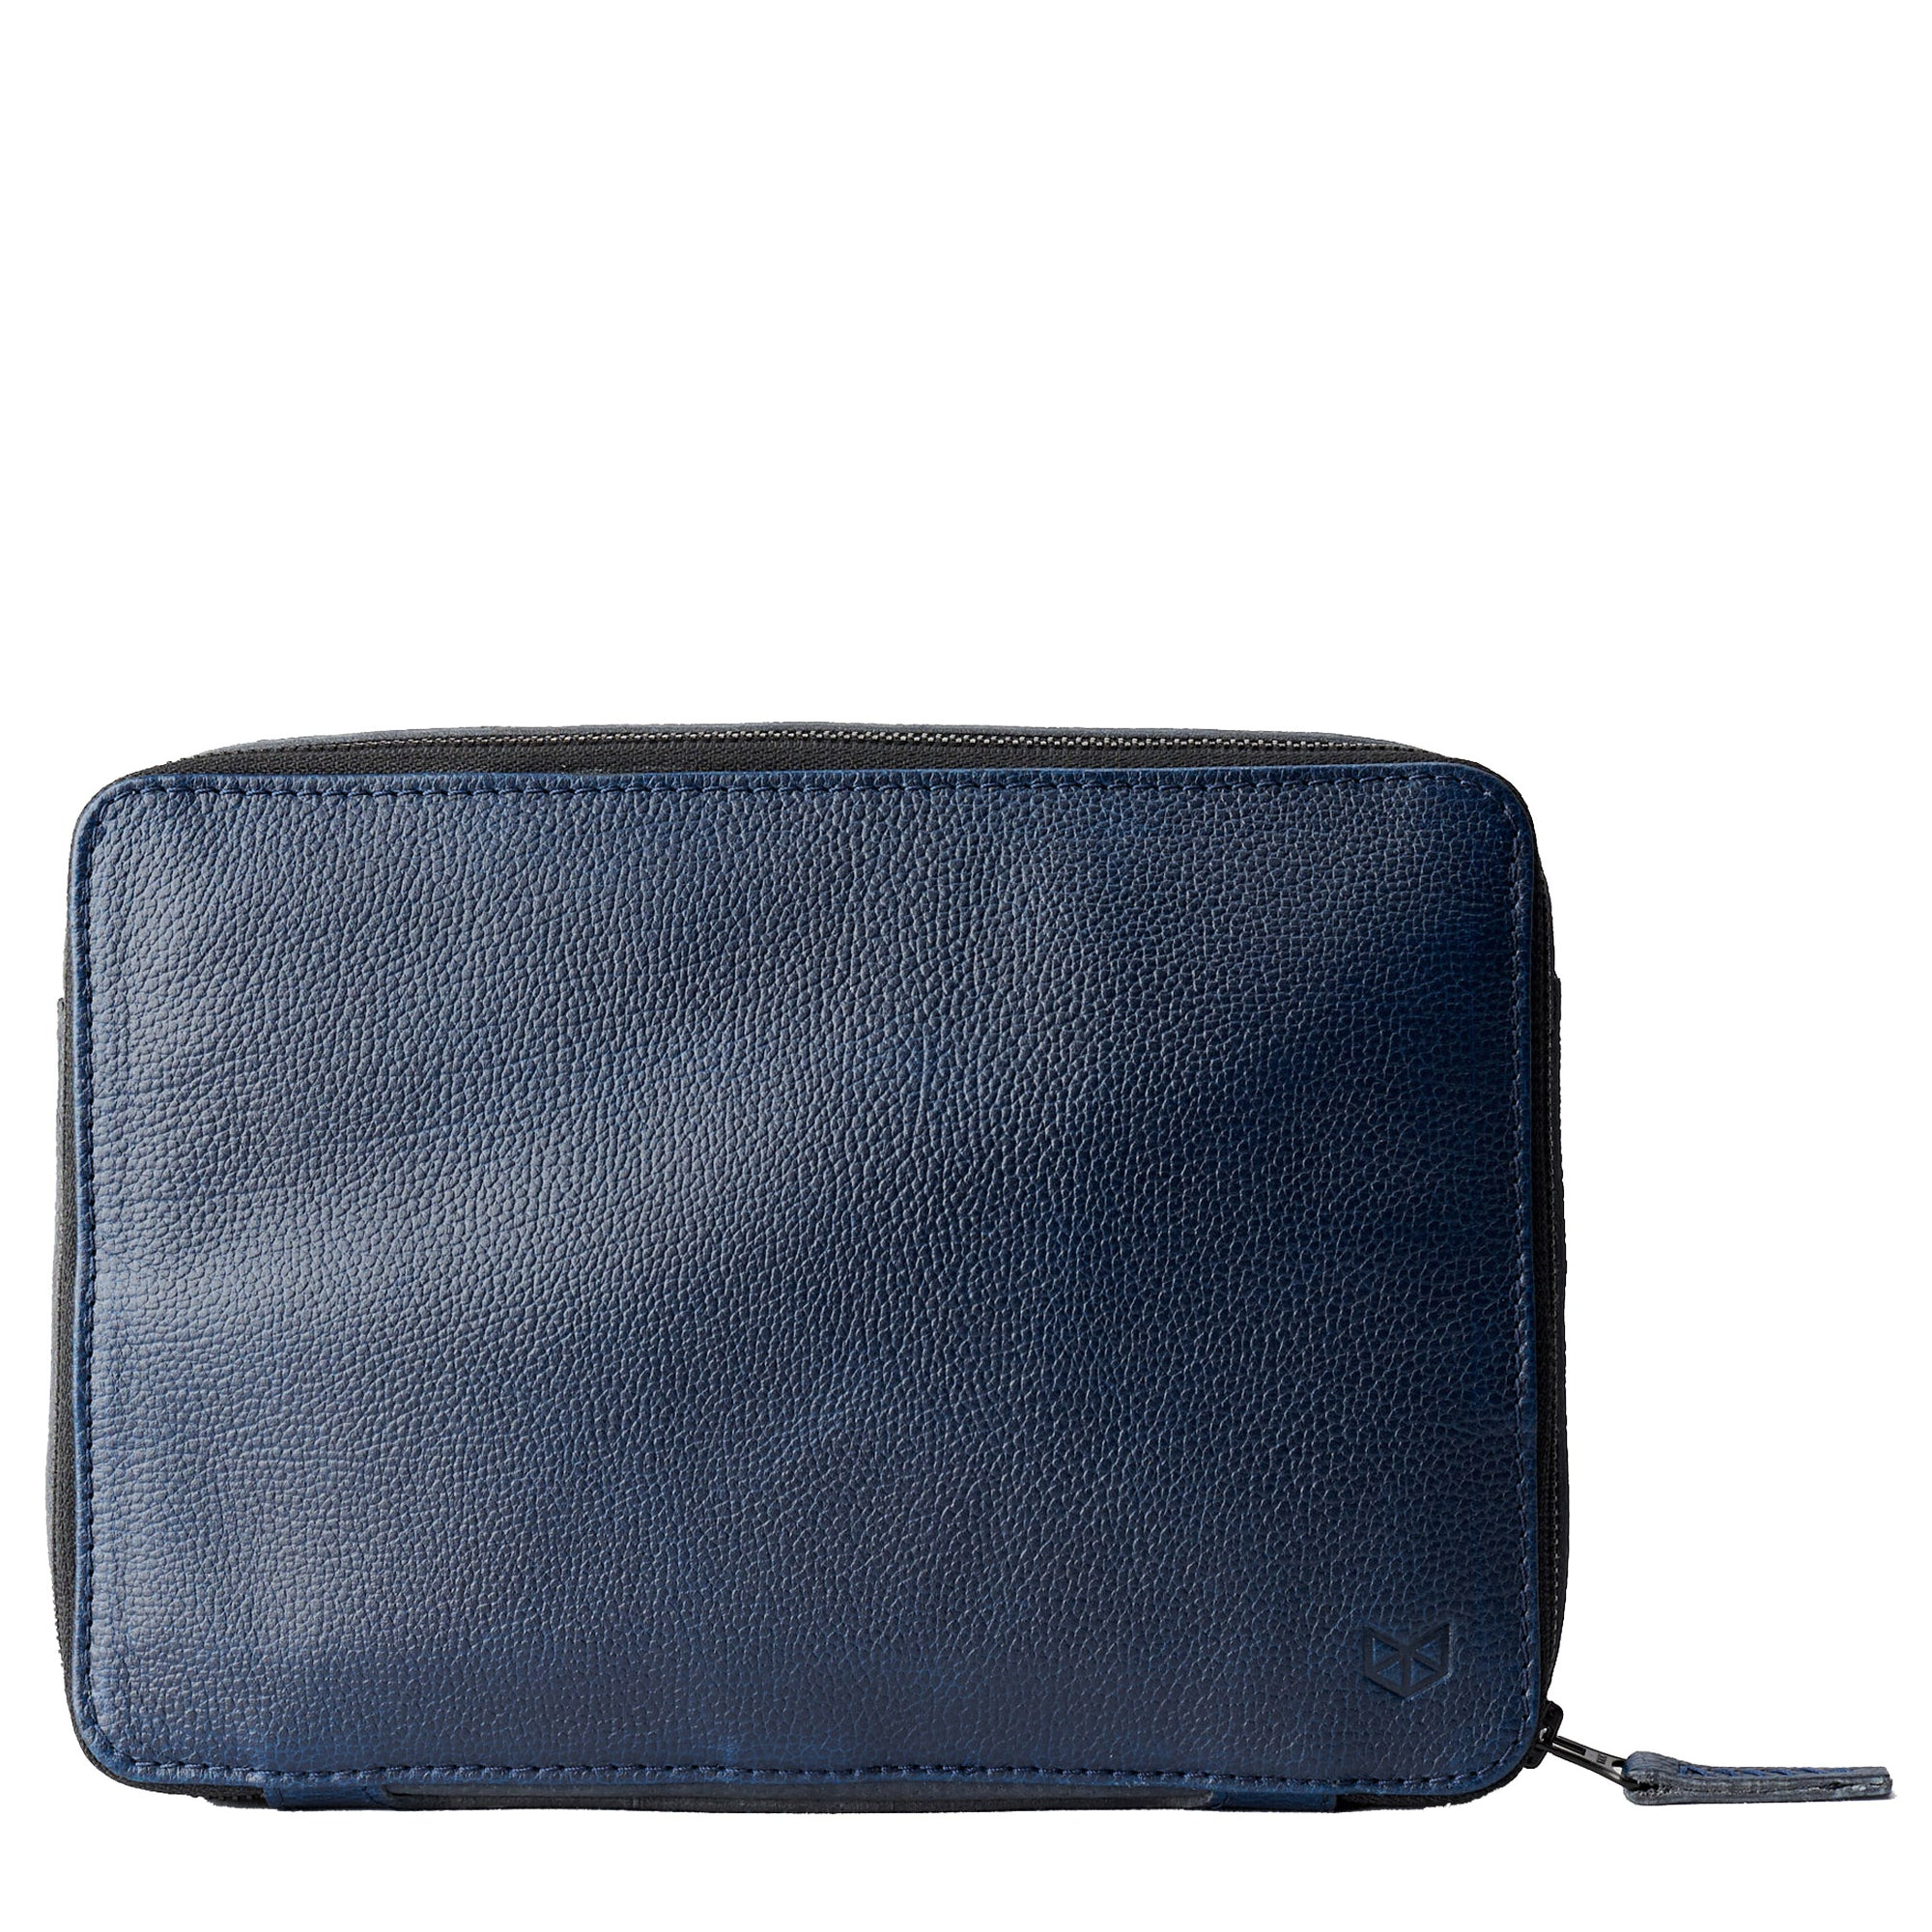 Gadget Travel Bag · Ocean Blue